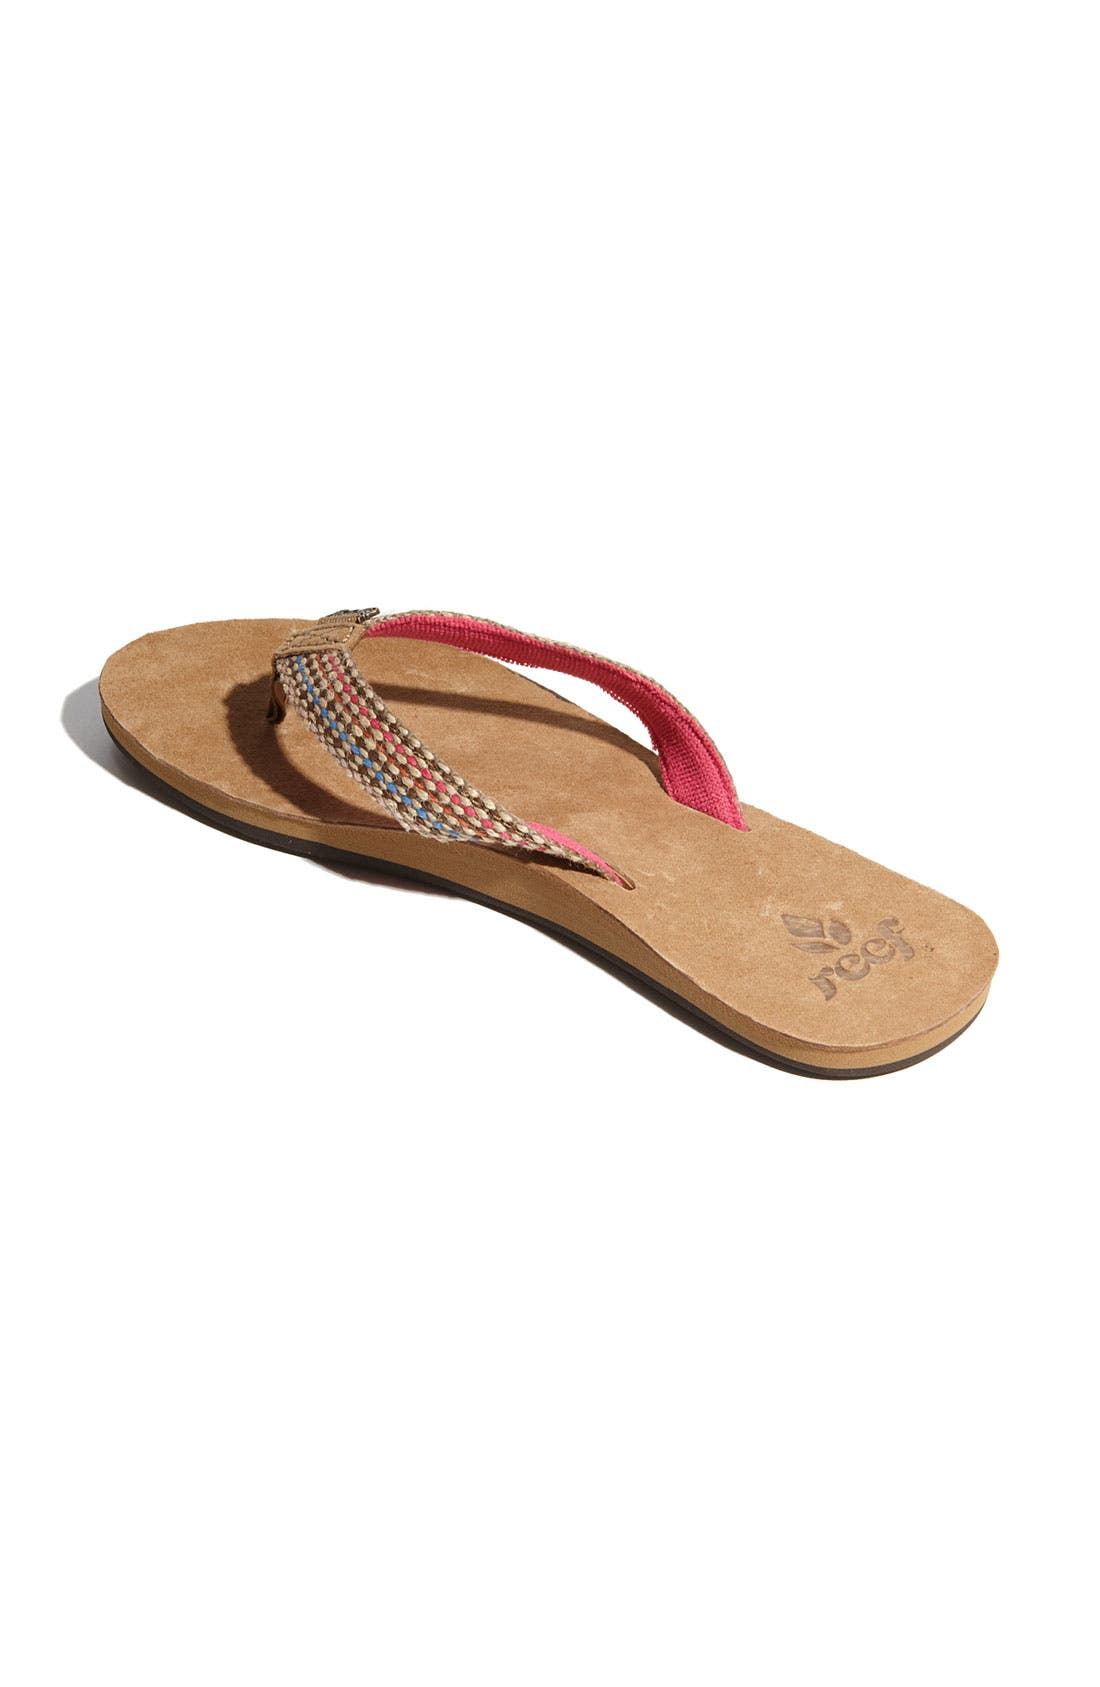 'Gypsylove' Sandal,                             Main thumbnail 1, color,